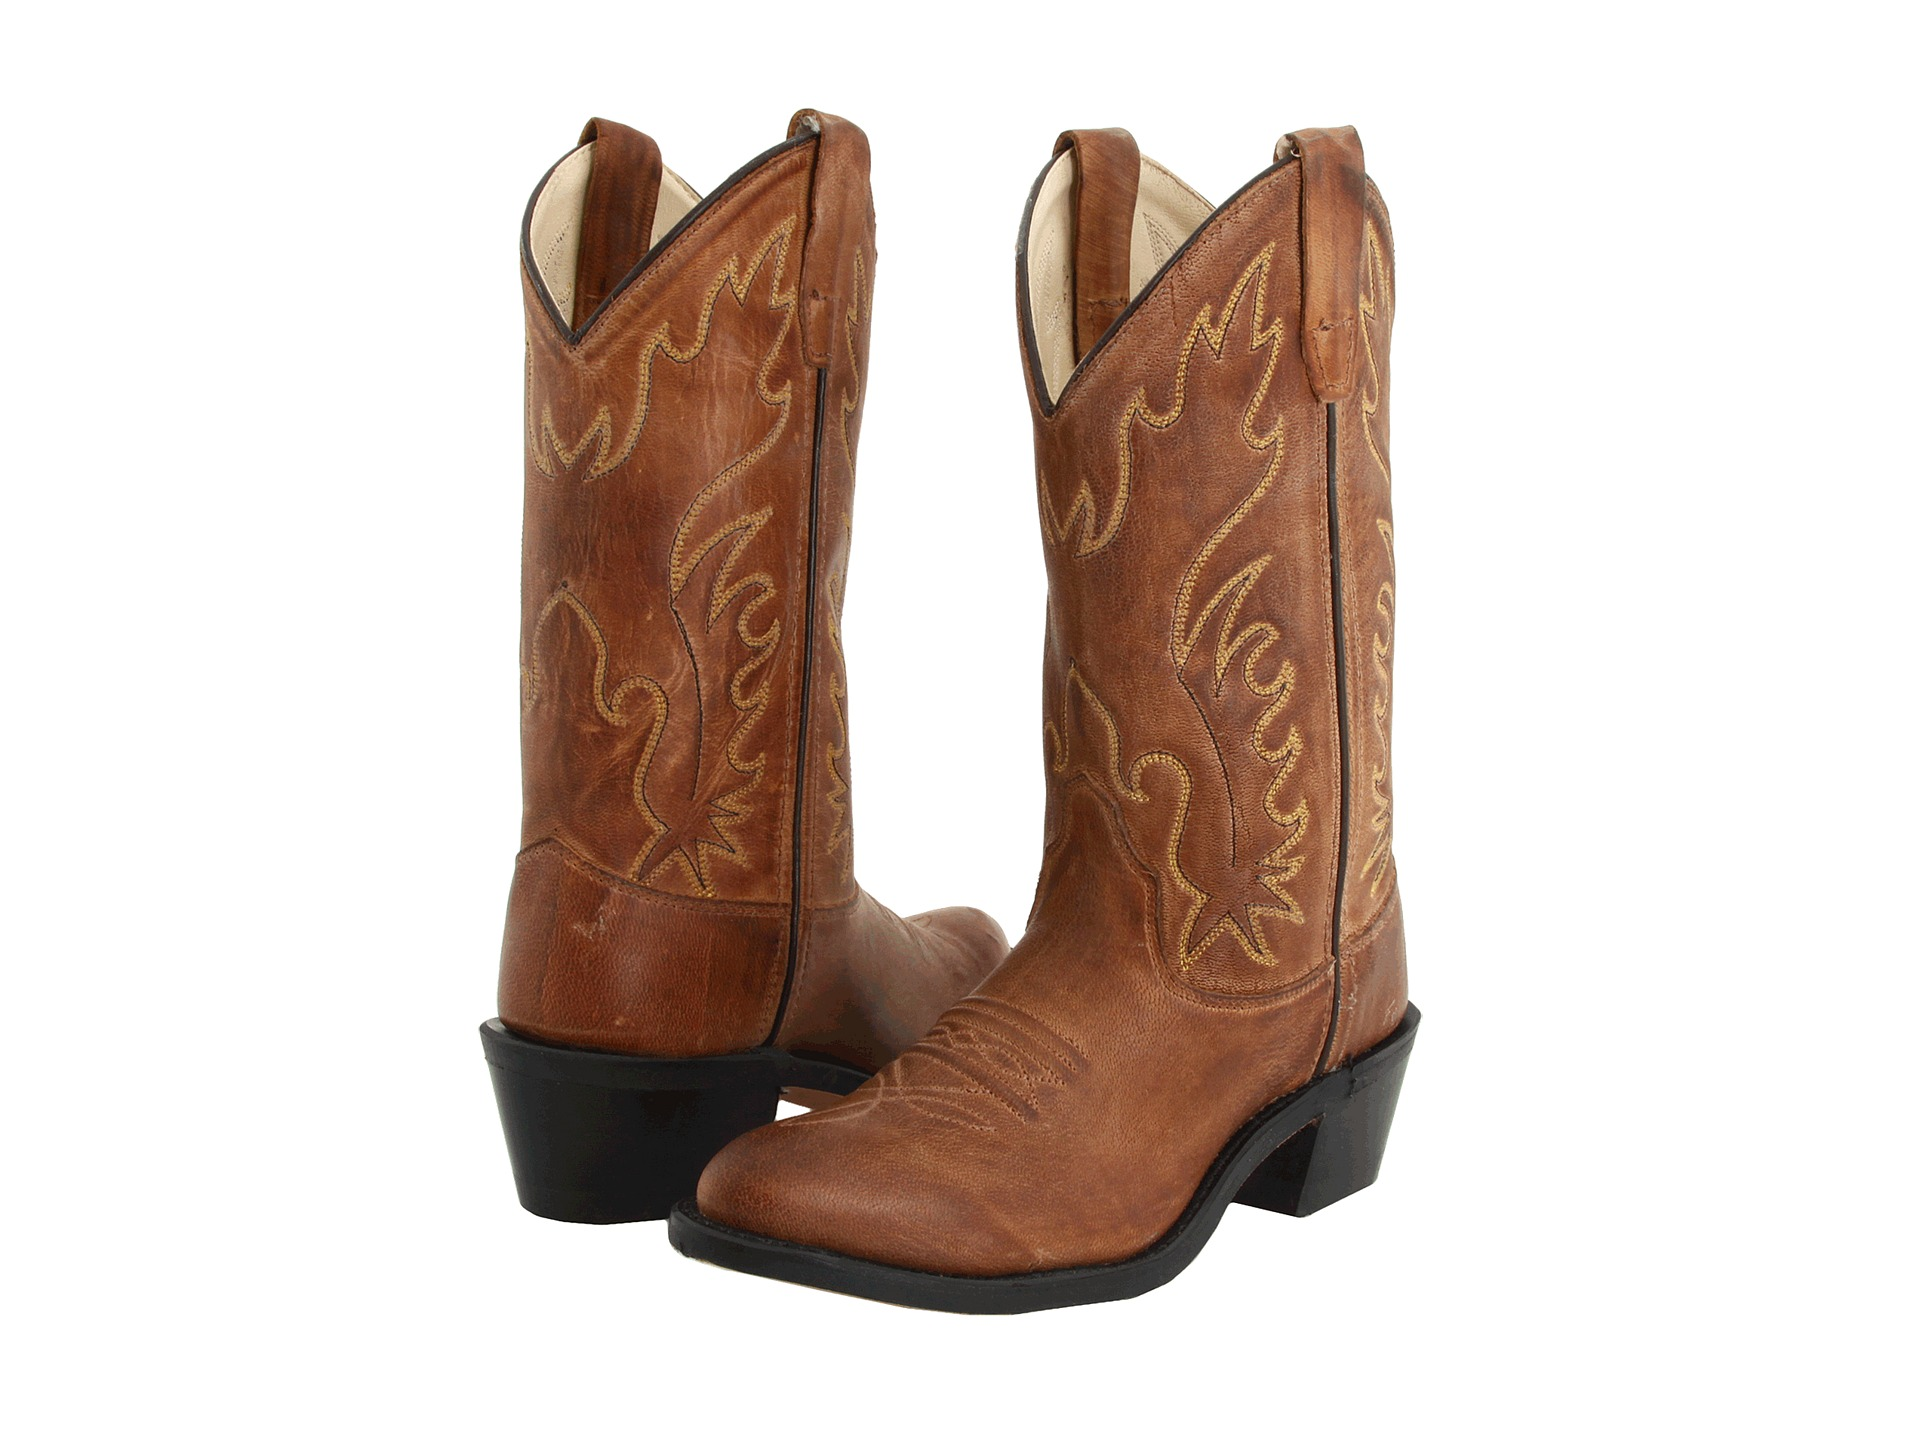 Cheap Cowgirl Boots For Sale fCq2zJoD